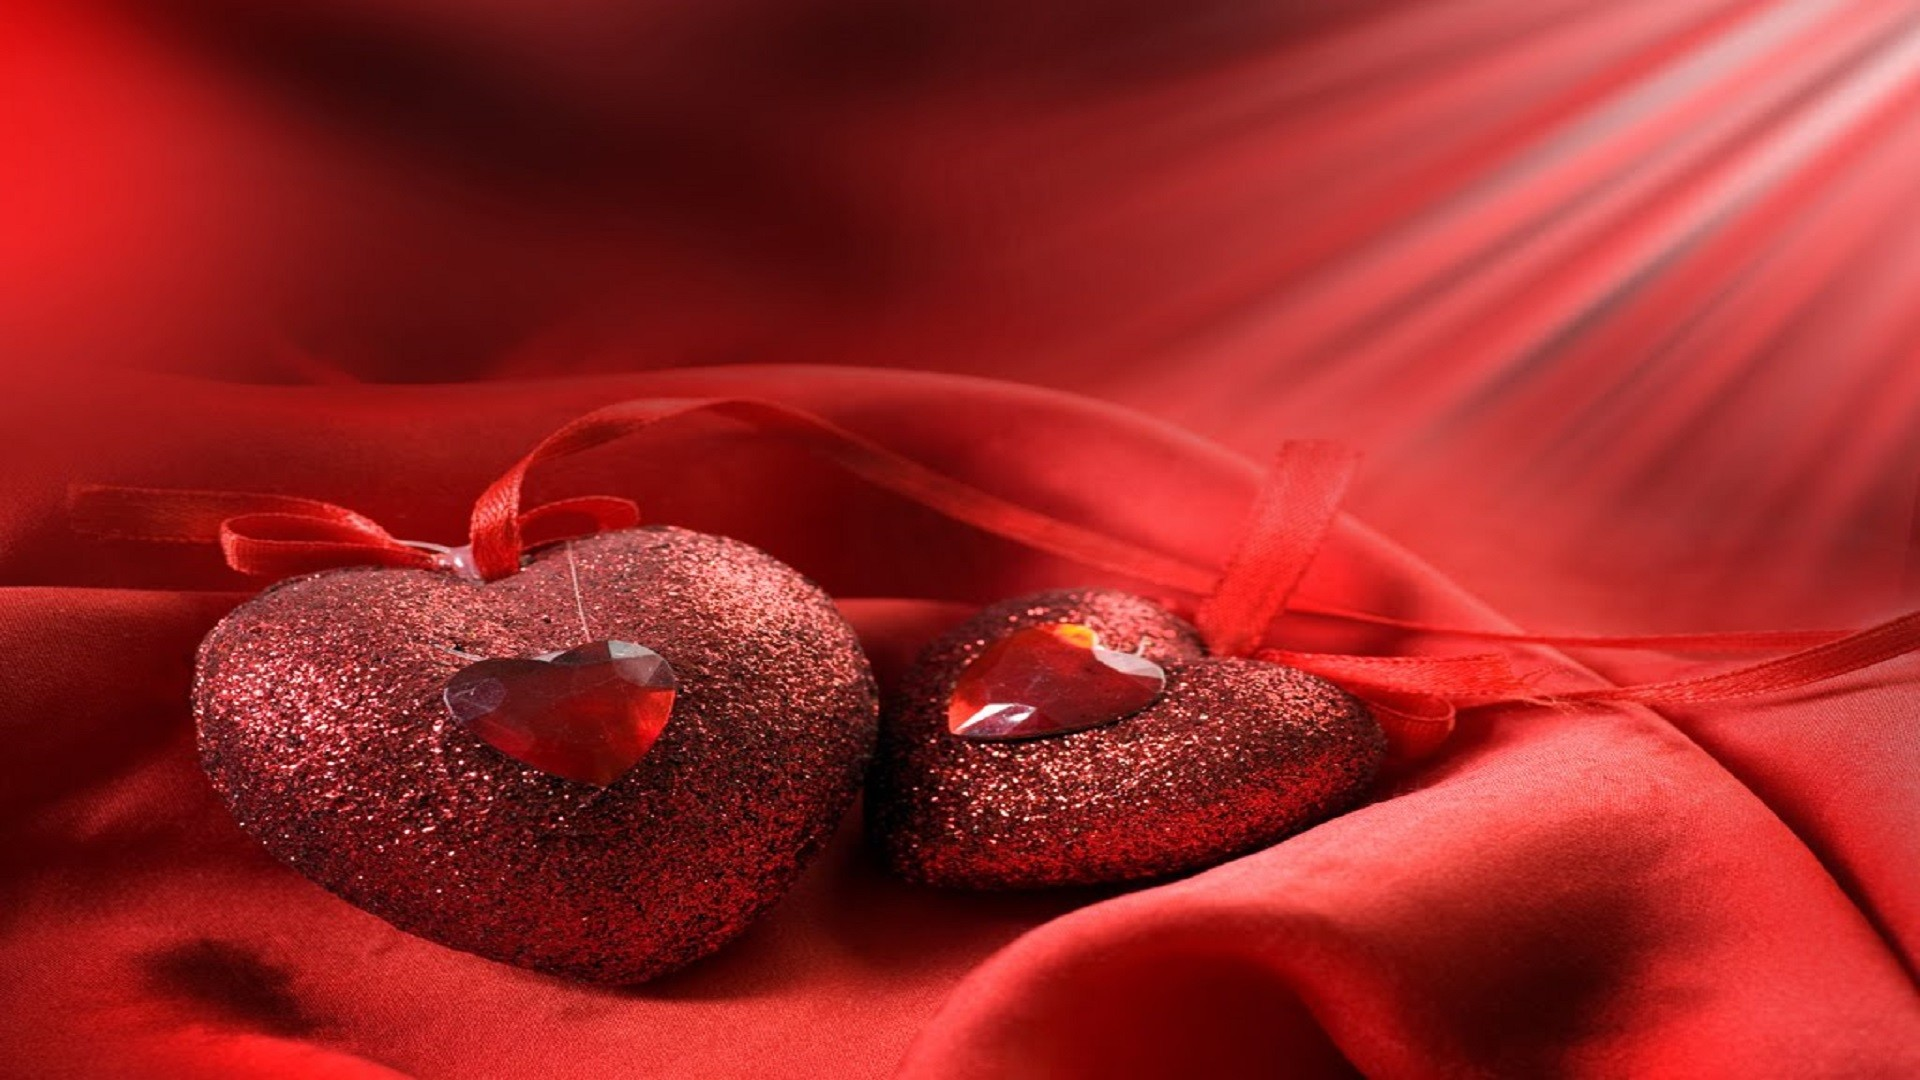 Wallpaper Cute Love 70 Images Sweet Wallpapers Free Download